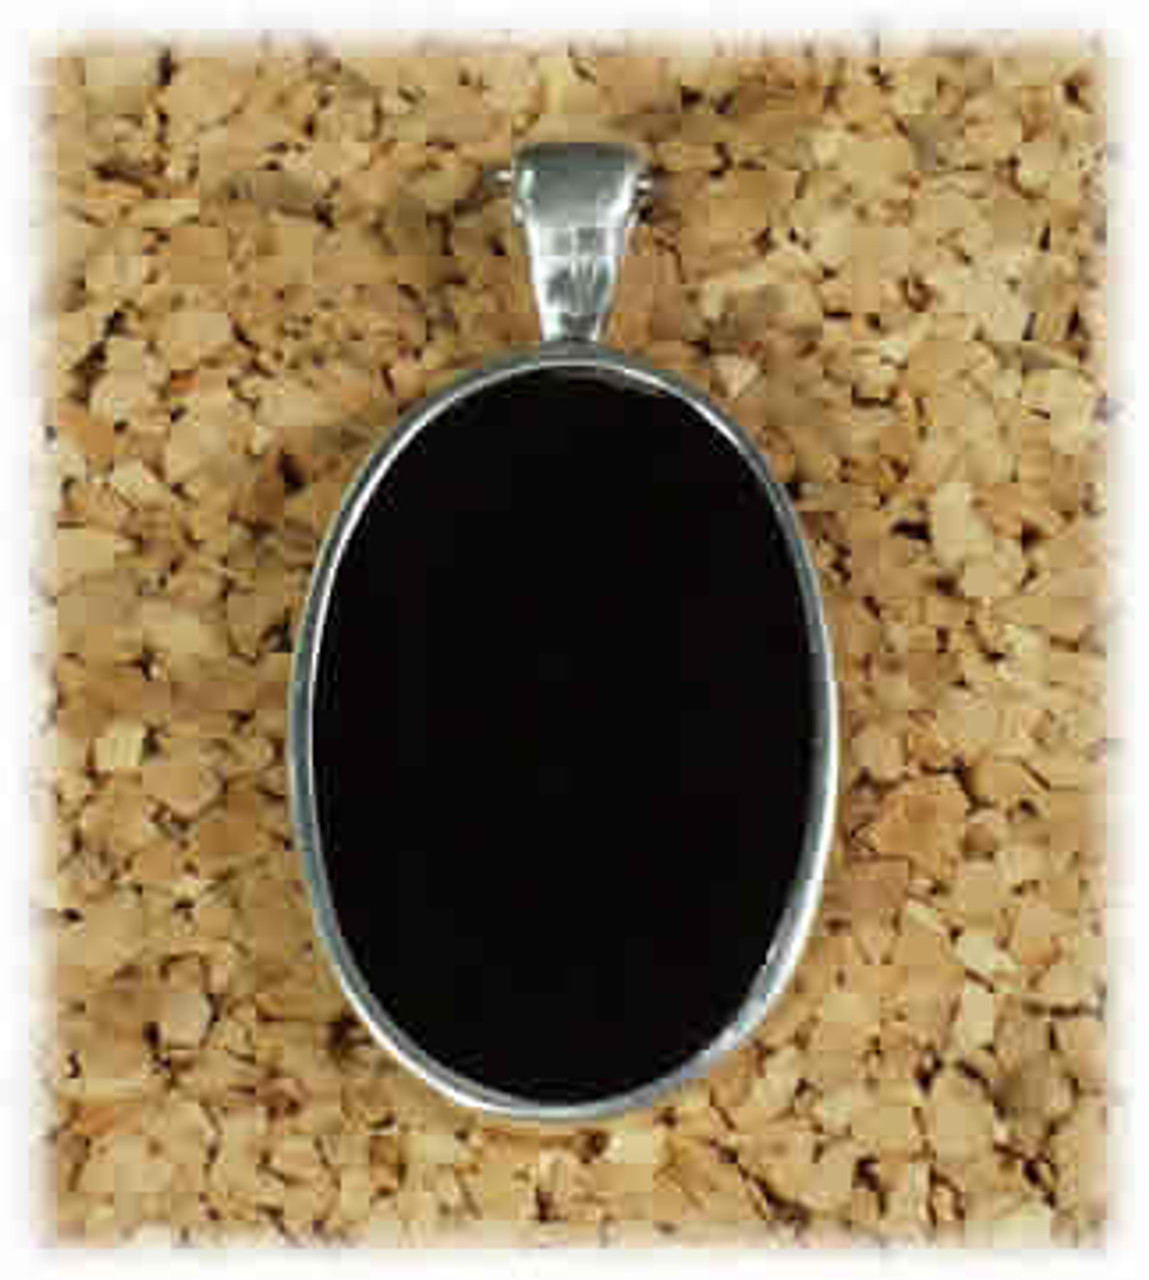 176BO: Black Onyx Small Oval Pendant Mounted in Sterling Sliver w/Open Back, Engravable Area, 1-1/8 inch x 3/4 inch.